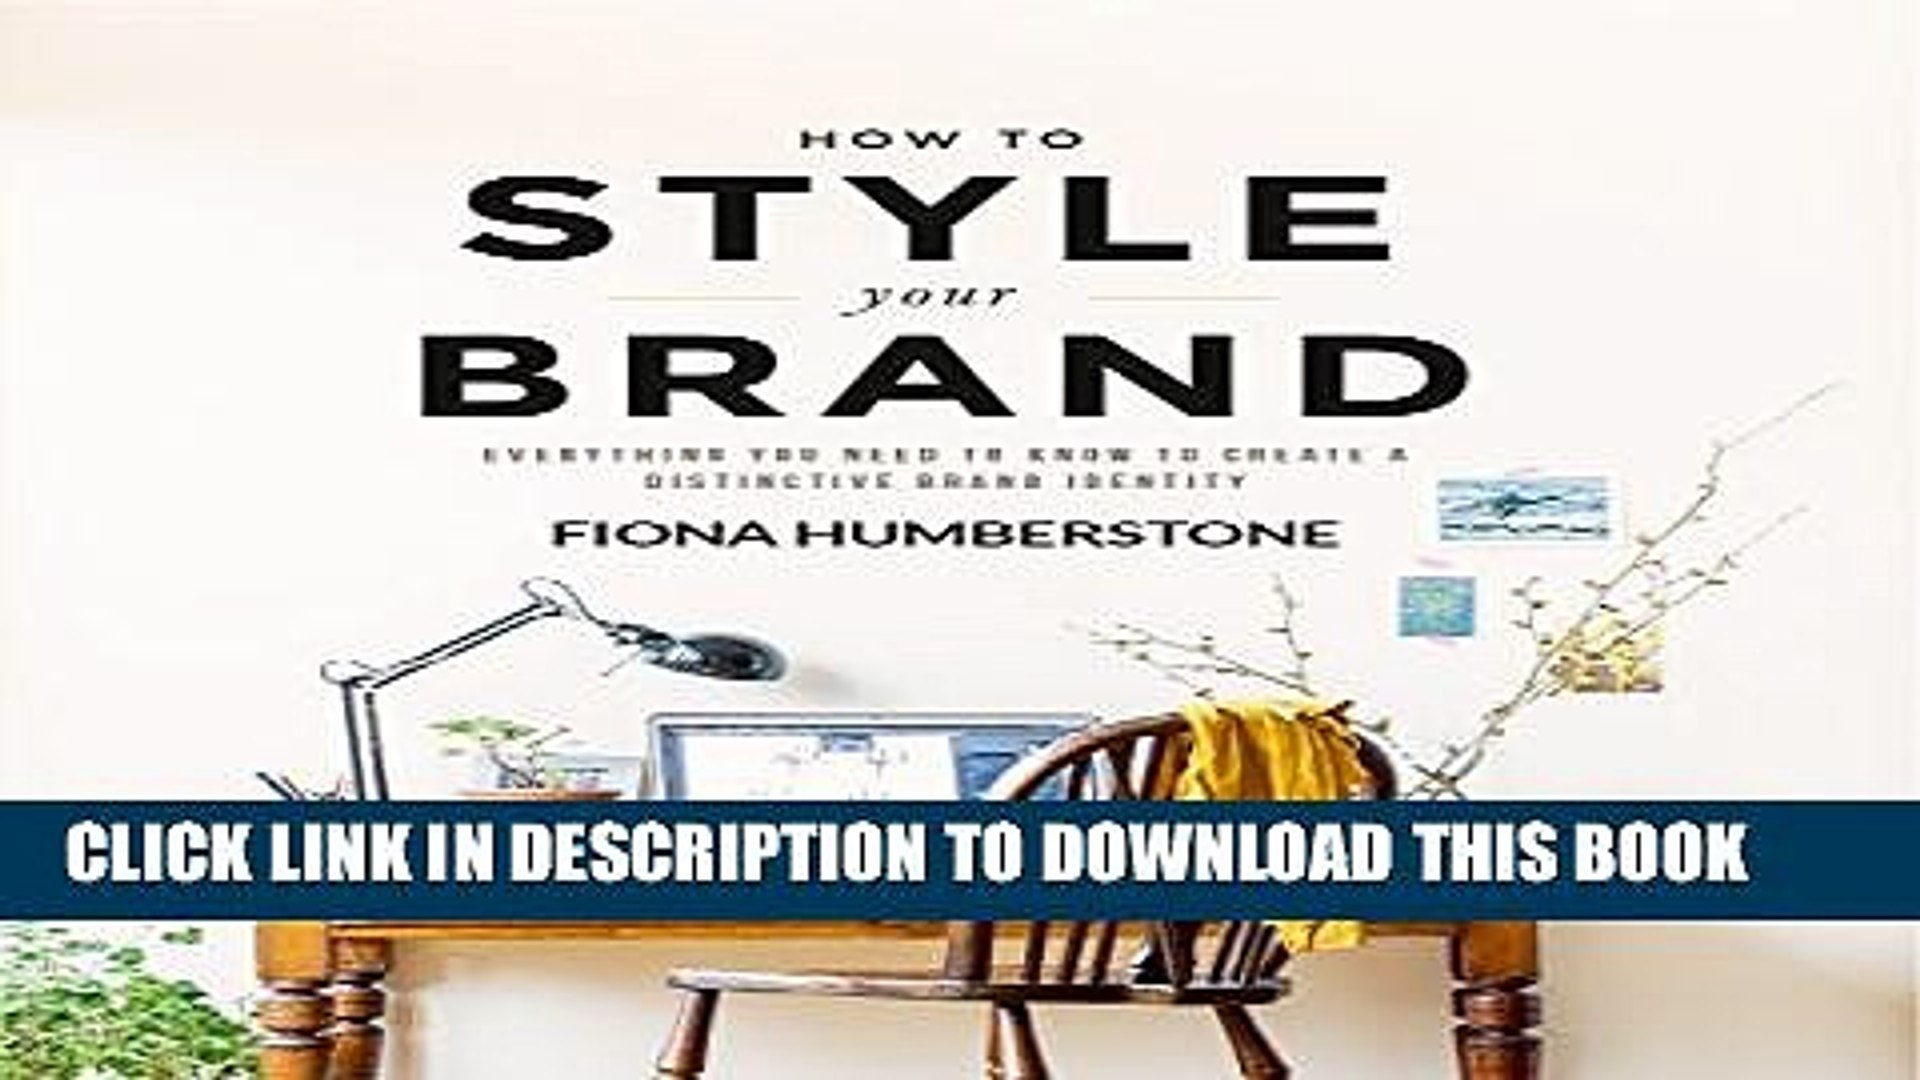 [PDF] How to Style Your Brand: Everything You Need to Know to Create a Distinctive Brand Identity